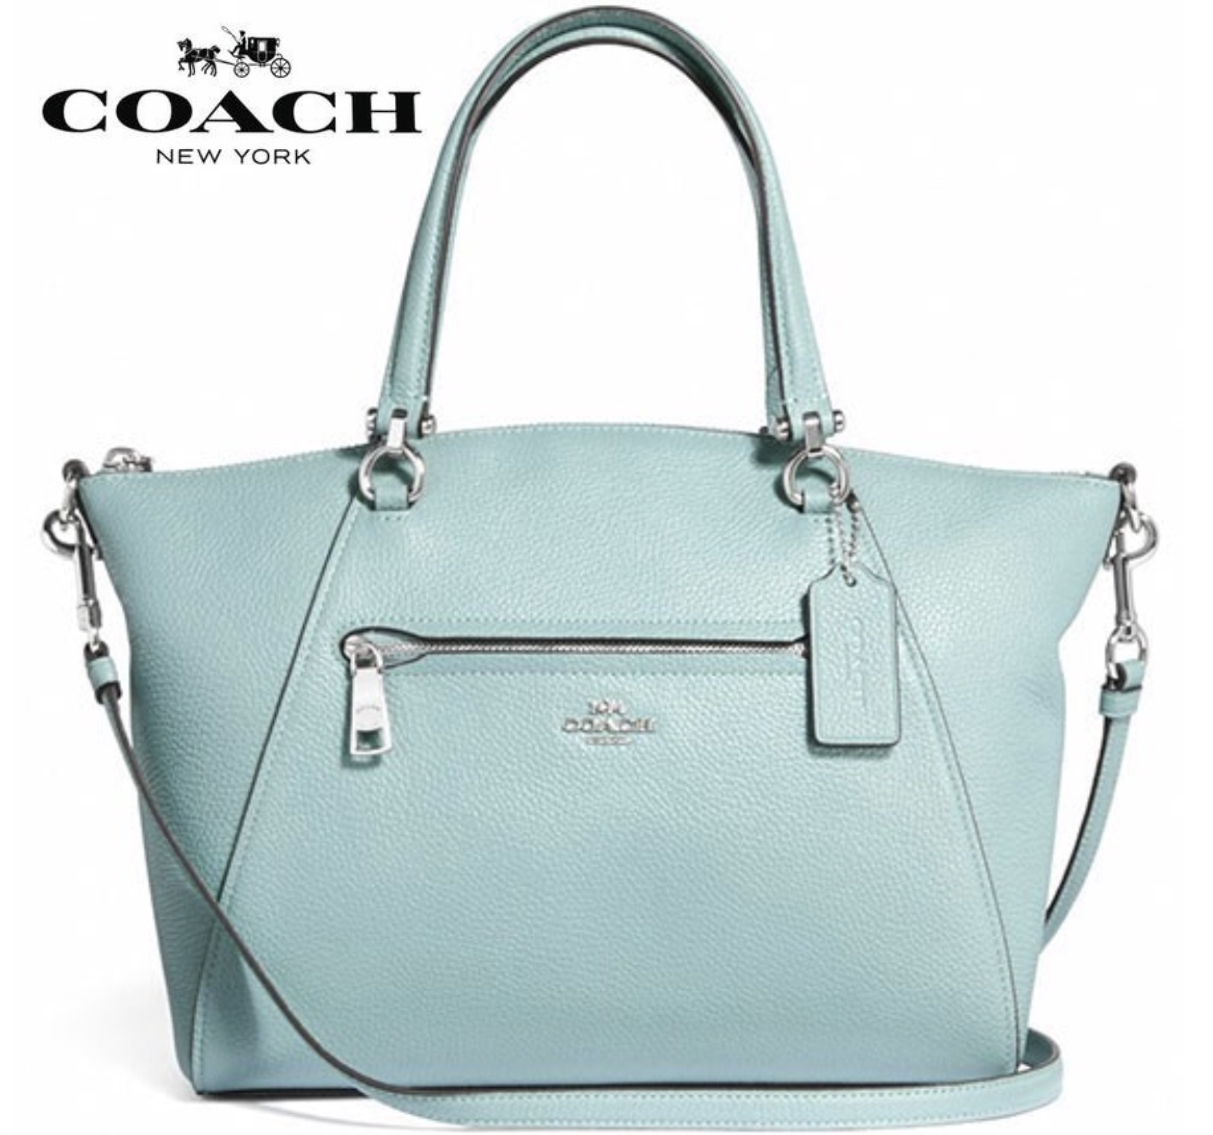 New Authentic Coach F79997 Prairie  Satchel Crossbody Bag in